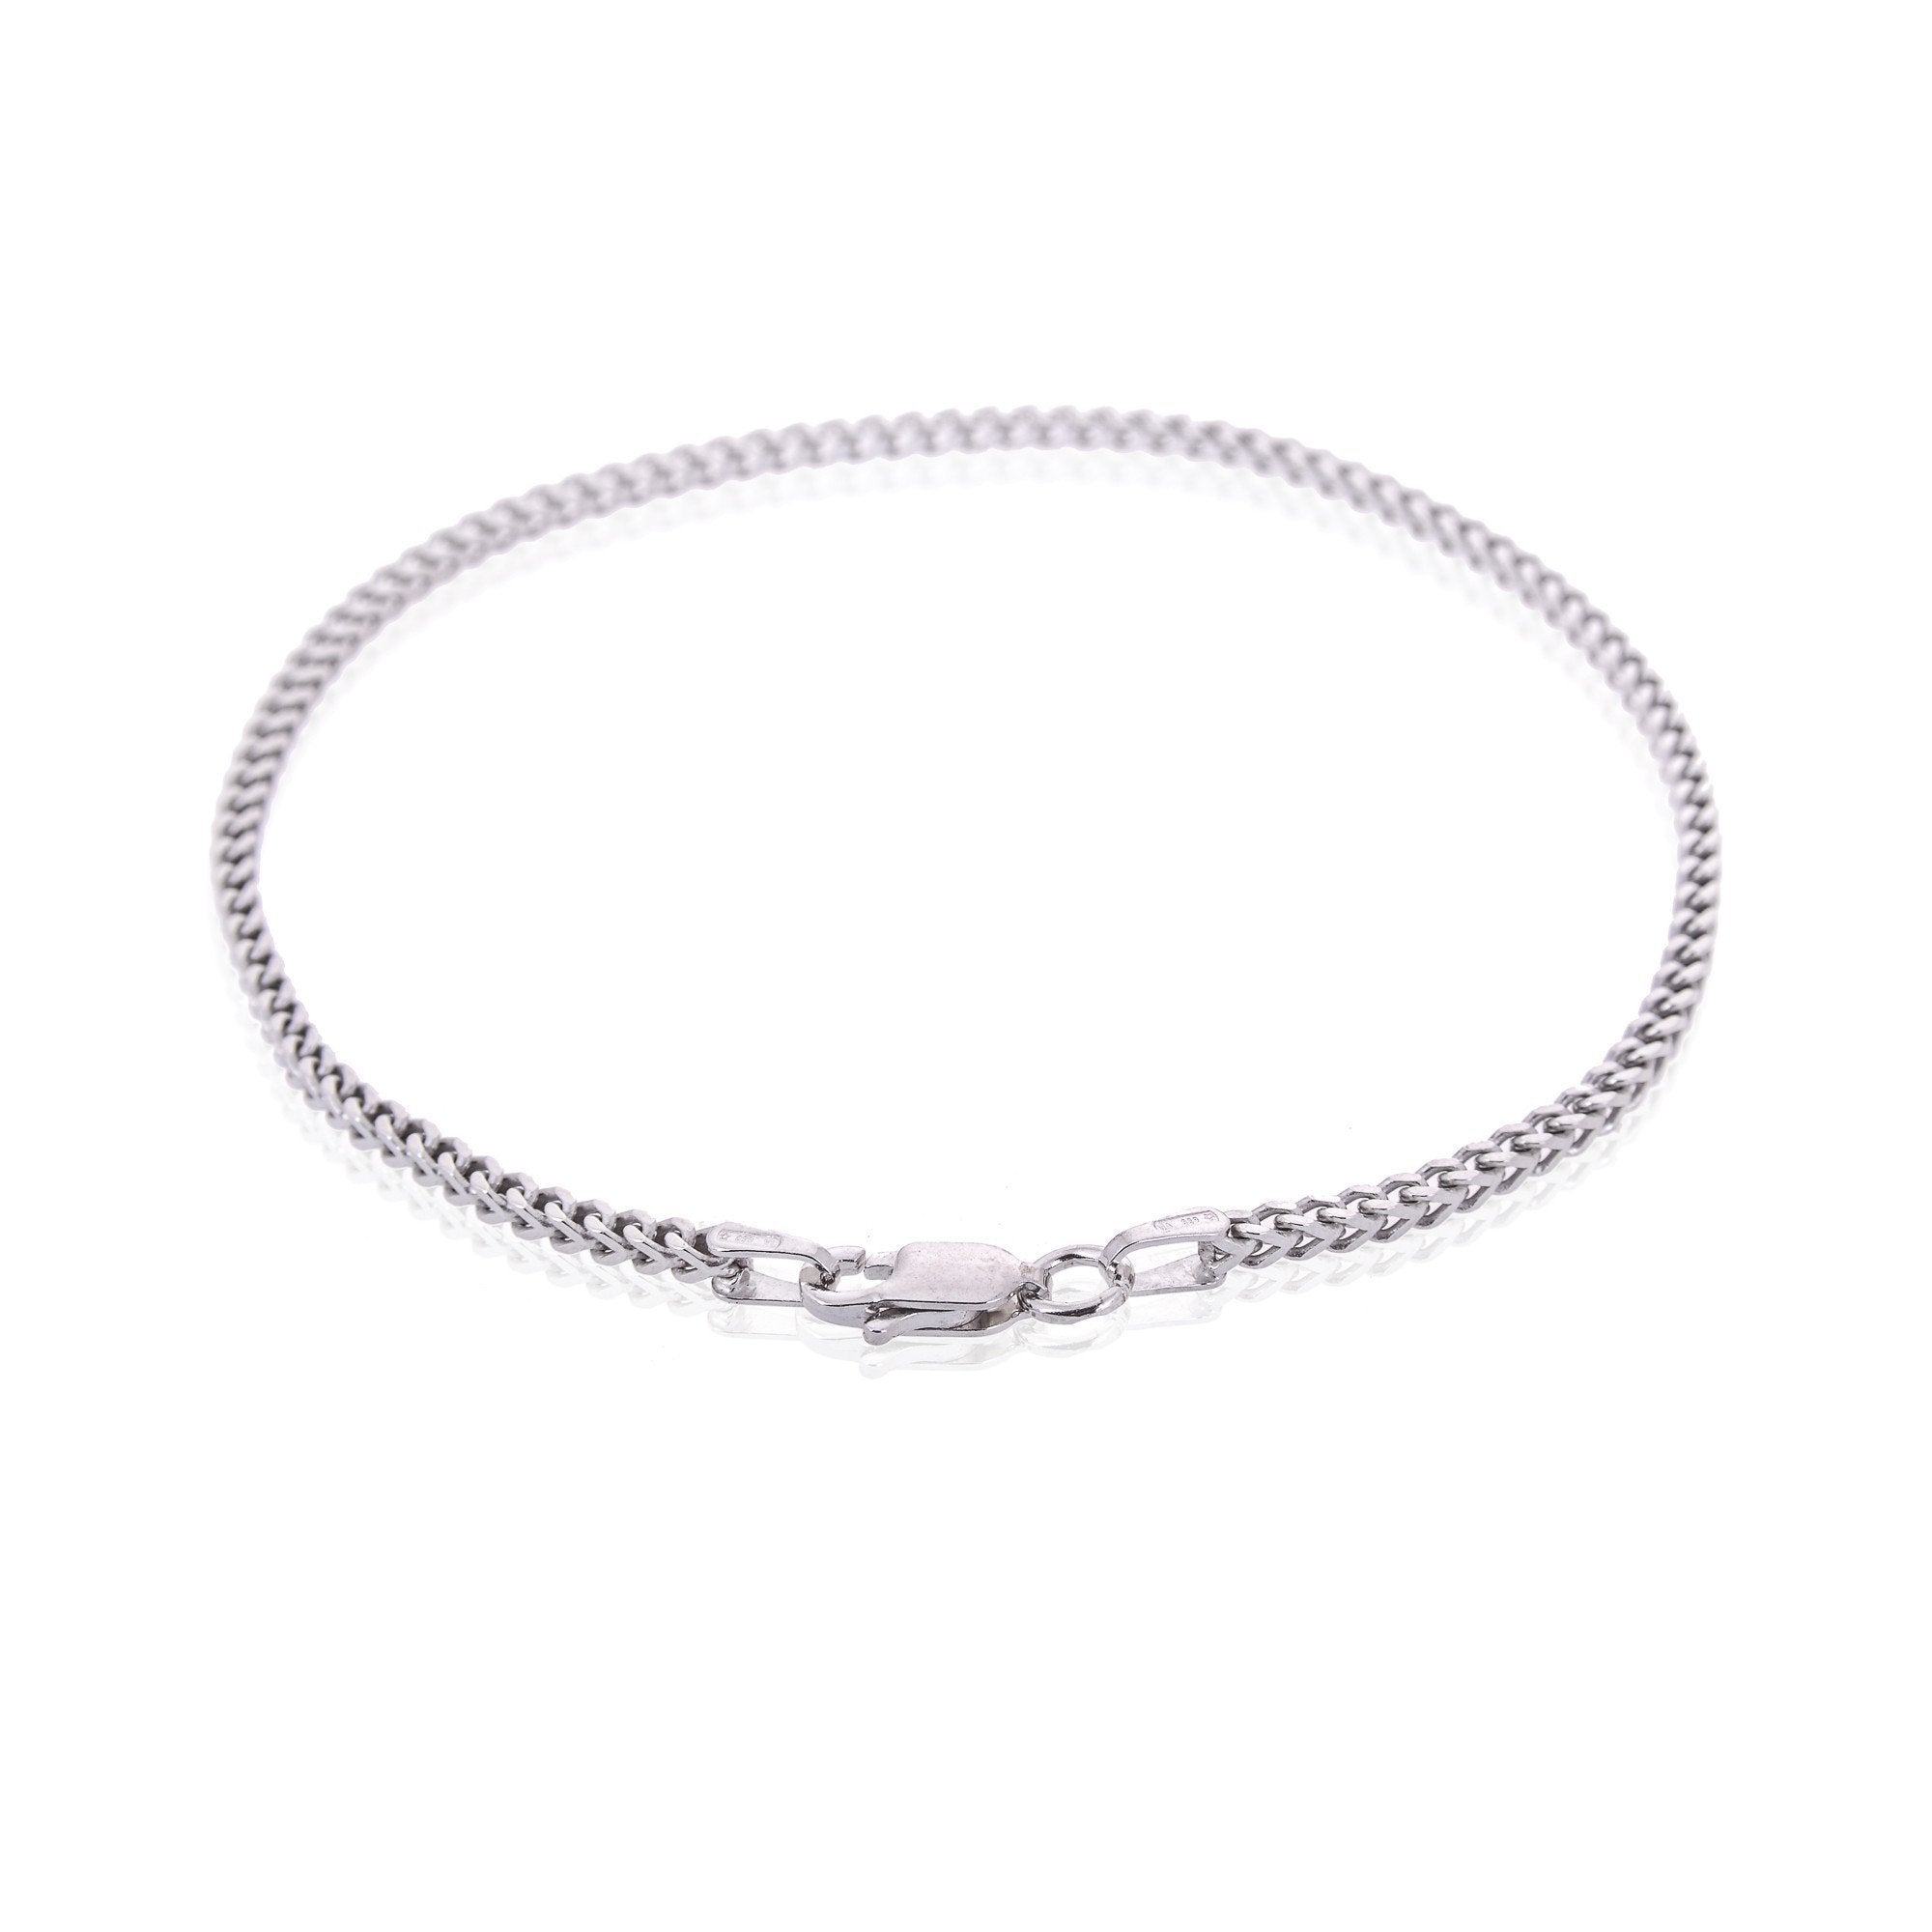 fd0331e1a237 Sterling Silver Mens Bracelets - AG-925 Men s Sterling Silver Franco Chain  Type Bracelet